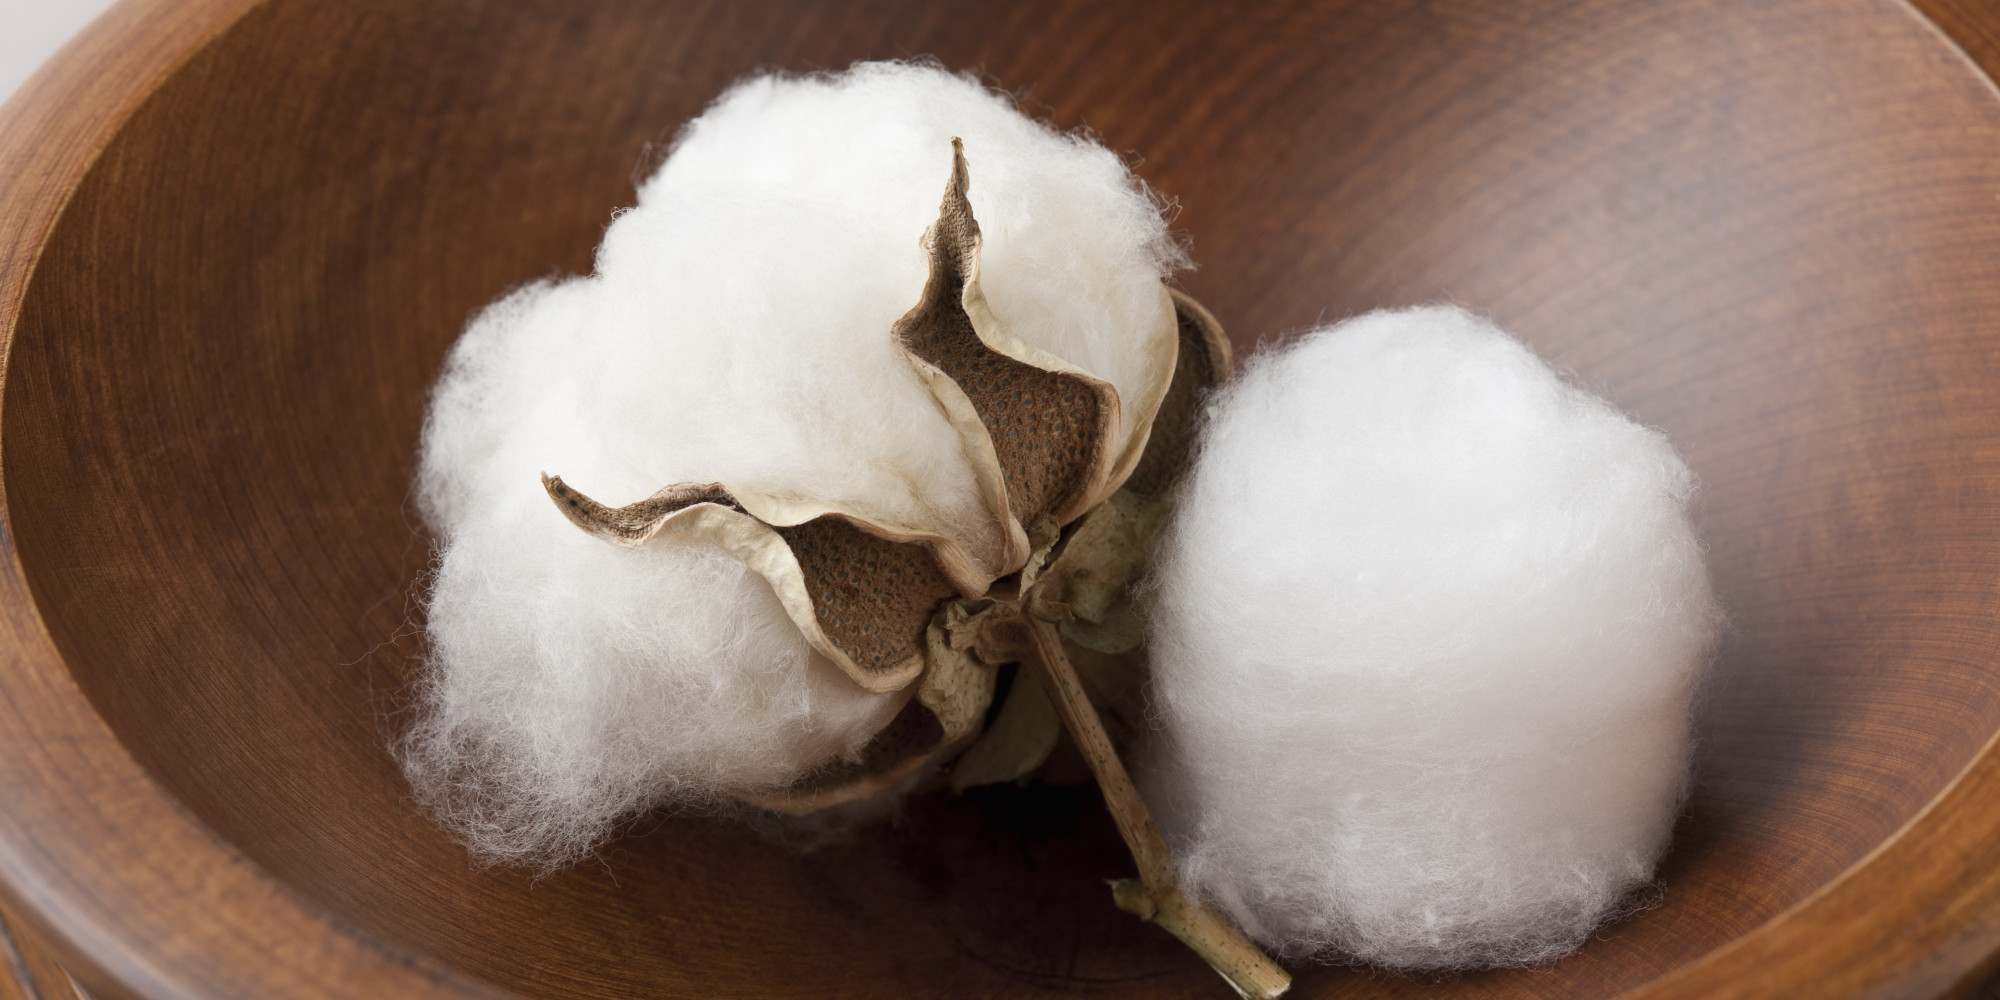 cotton research papers Unsw sydney nsw 2052 australia telephone +61 2 93851000 authorised by deputy vice-chancellor (research) unsw cricos provider code: 00098g abn.